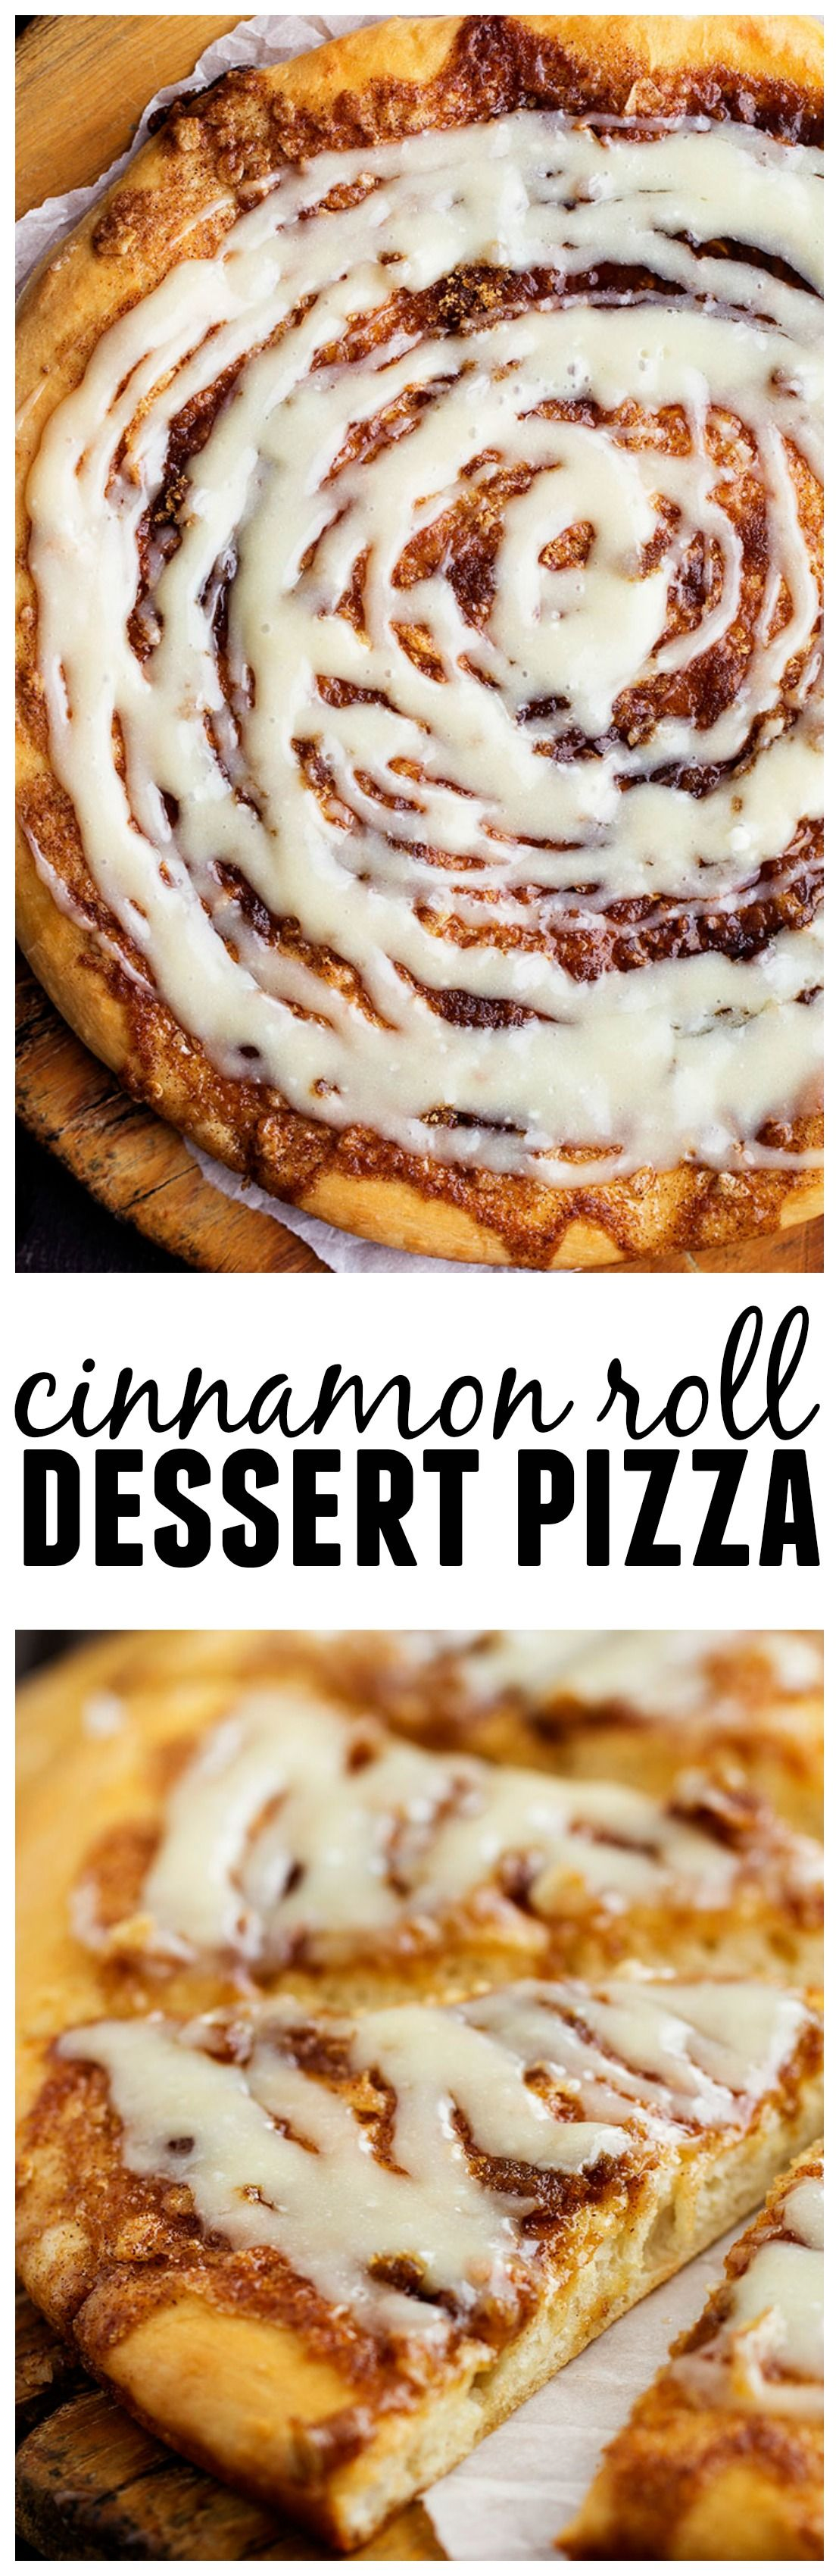 This Cinnamon Roll Dessert Pizza Will Be The Best Dessert That You Make All Of The Goodness Of A Cinnamon Roll Drizzled In A Cream Cheese Glaze